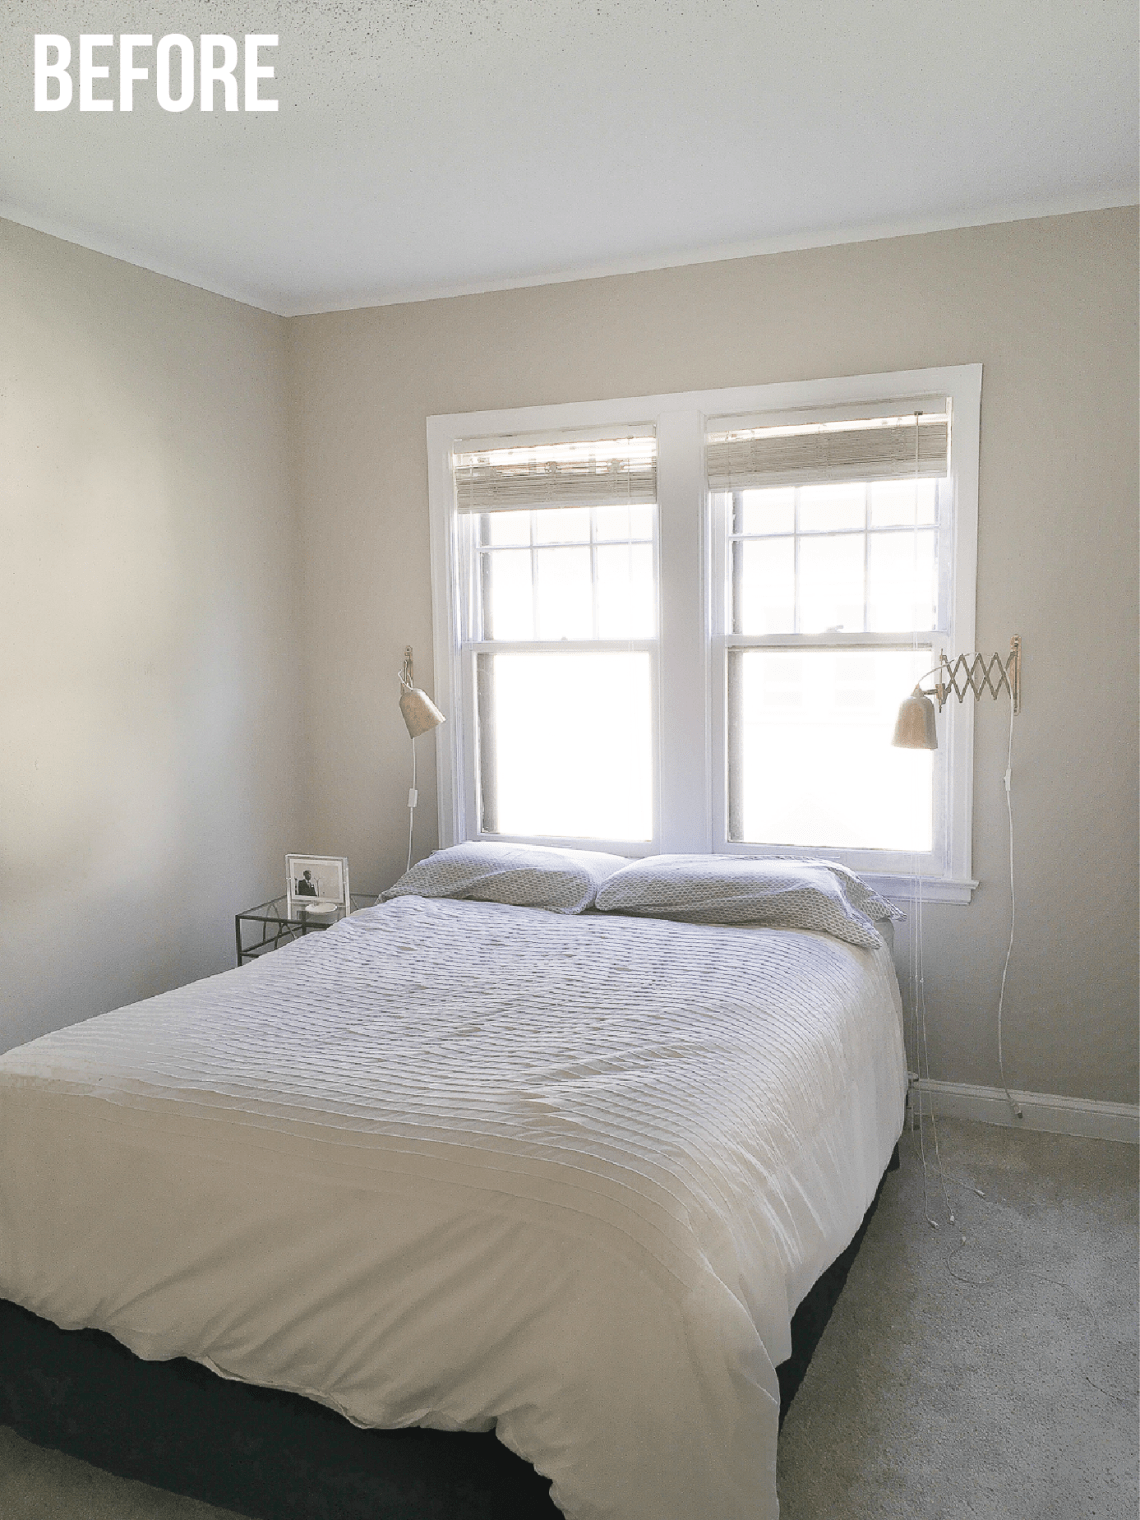 A Mini Bedroom Makeover: see how we transformed our bare, forgotten bedroom into a cozy retreat with a few minor additions.